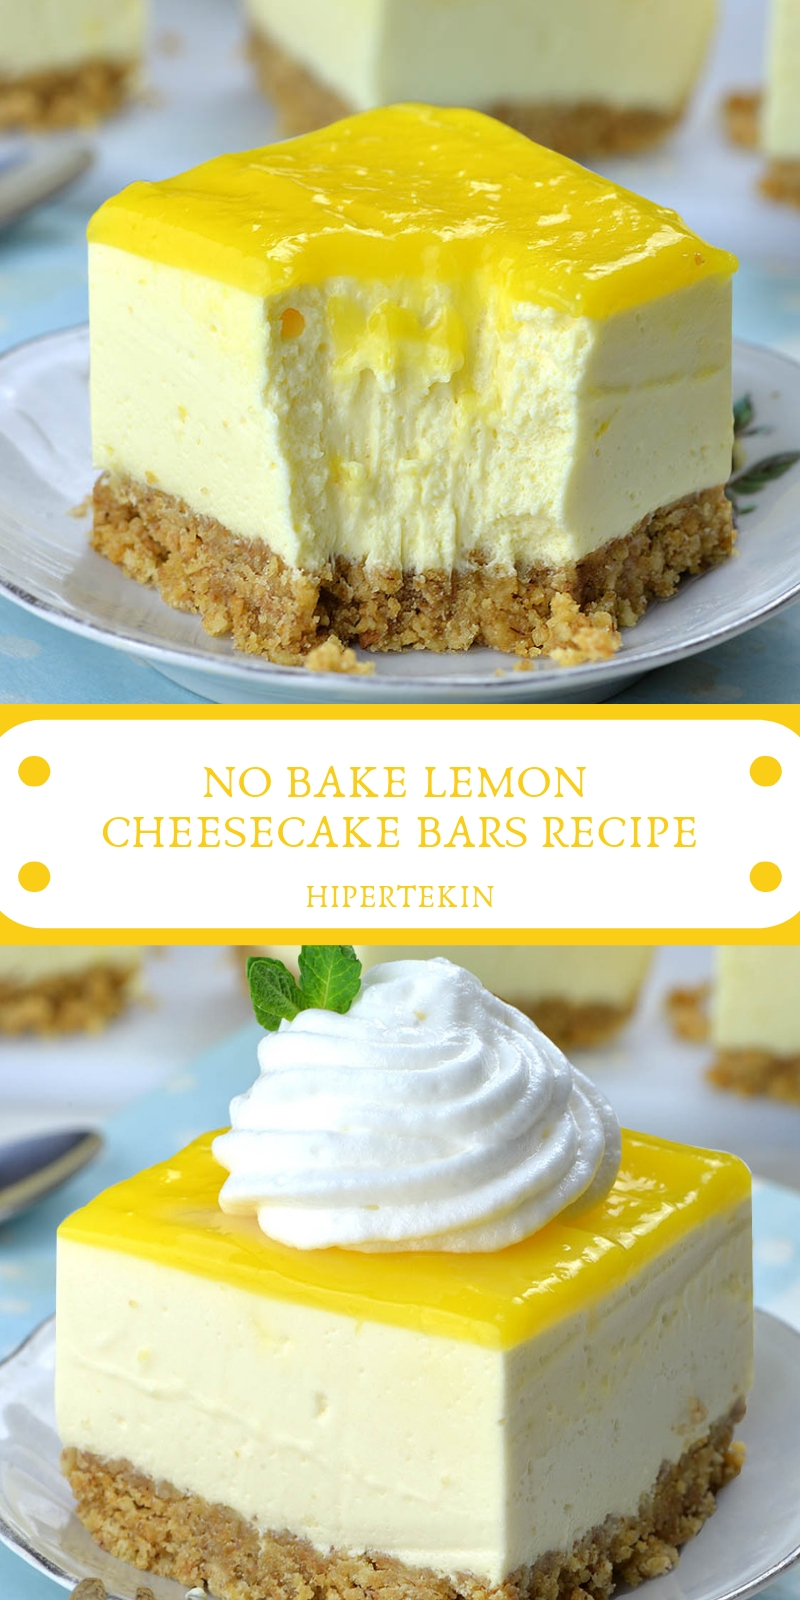 NO BAKE LEMON CHEESECAKE BARS RECIPE